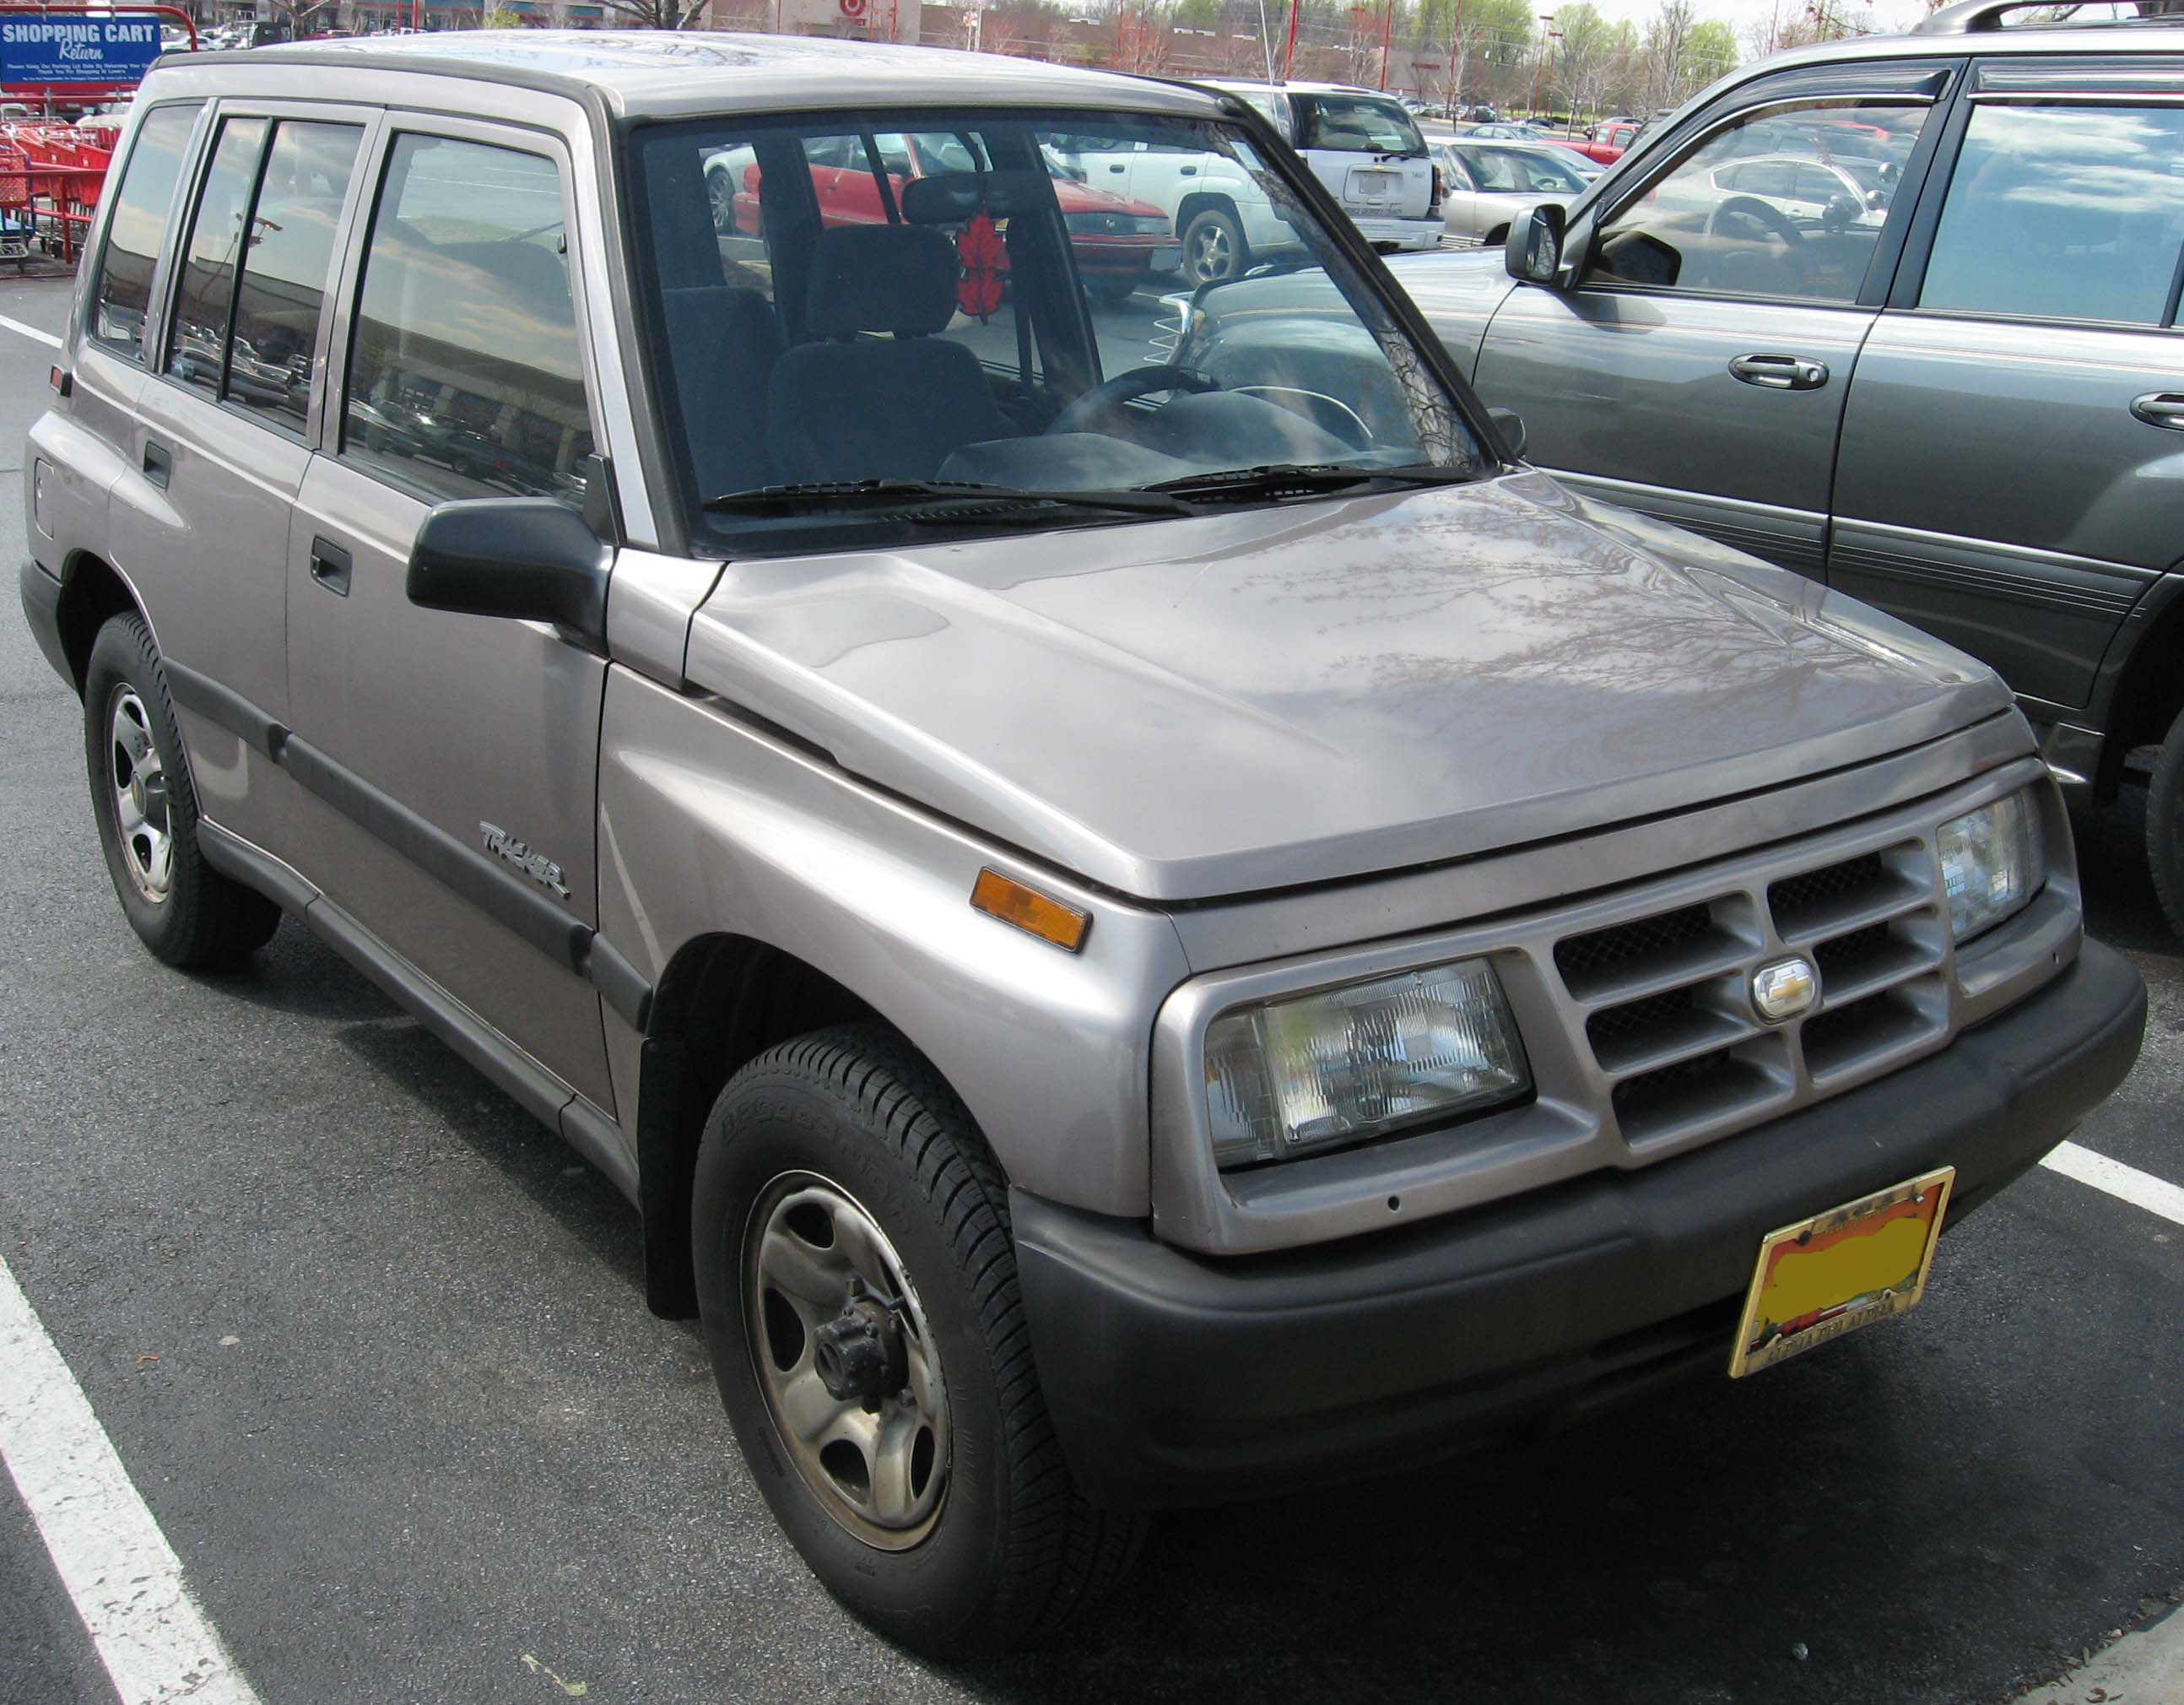 File:Geo-Tracker-4door.jpg - Wikimedia Commons